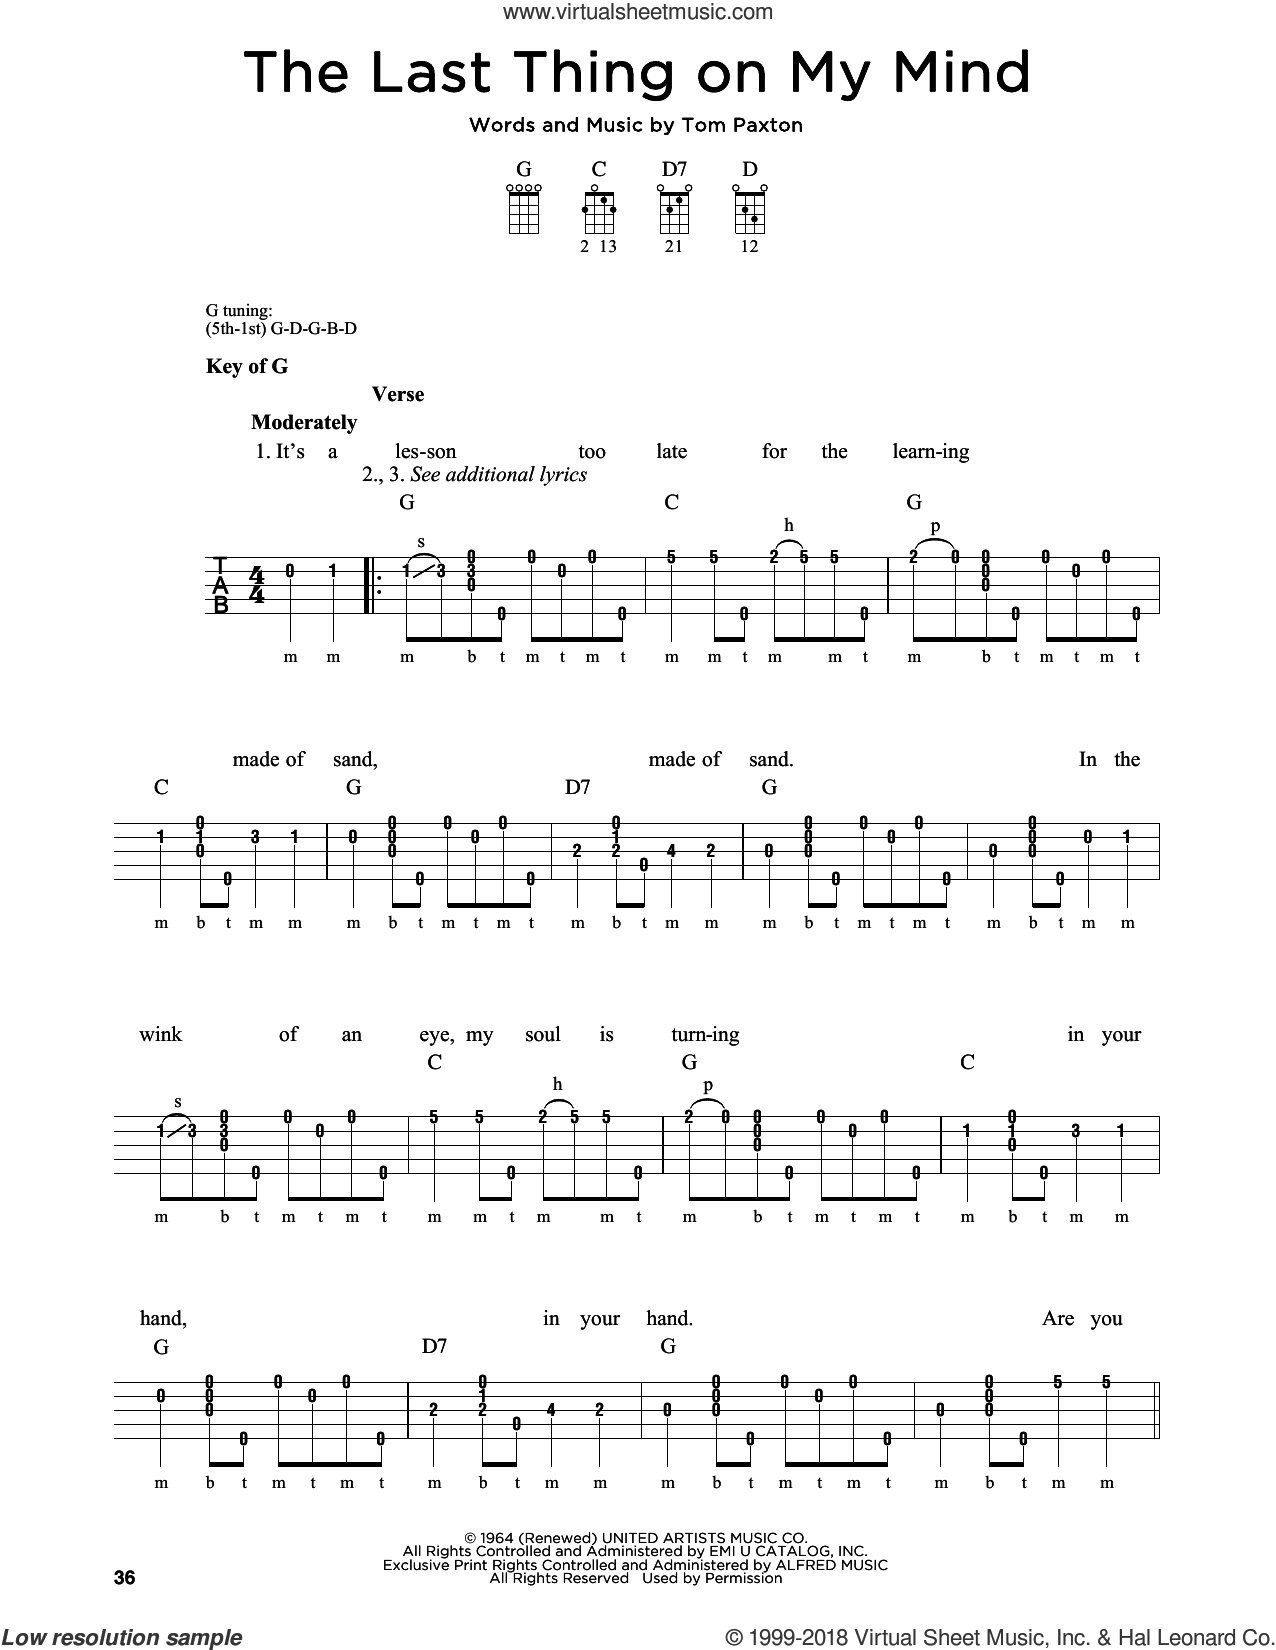 The Last Thing On My Mind sheet music for banjo solo by Tom Paxton, Greg Cahill and Michael J. Miles, intermediate skill level